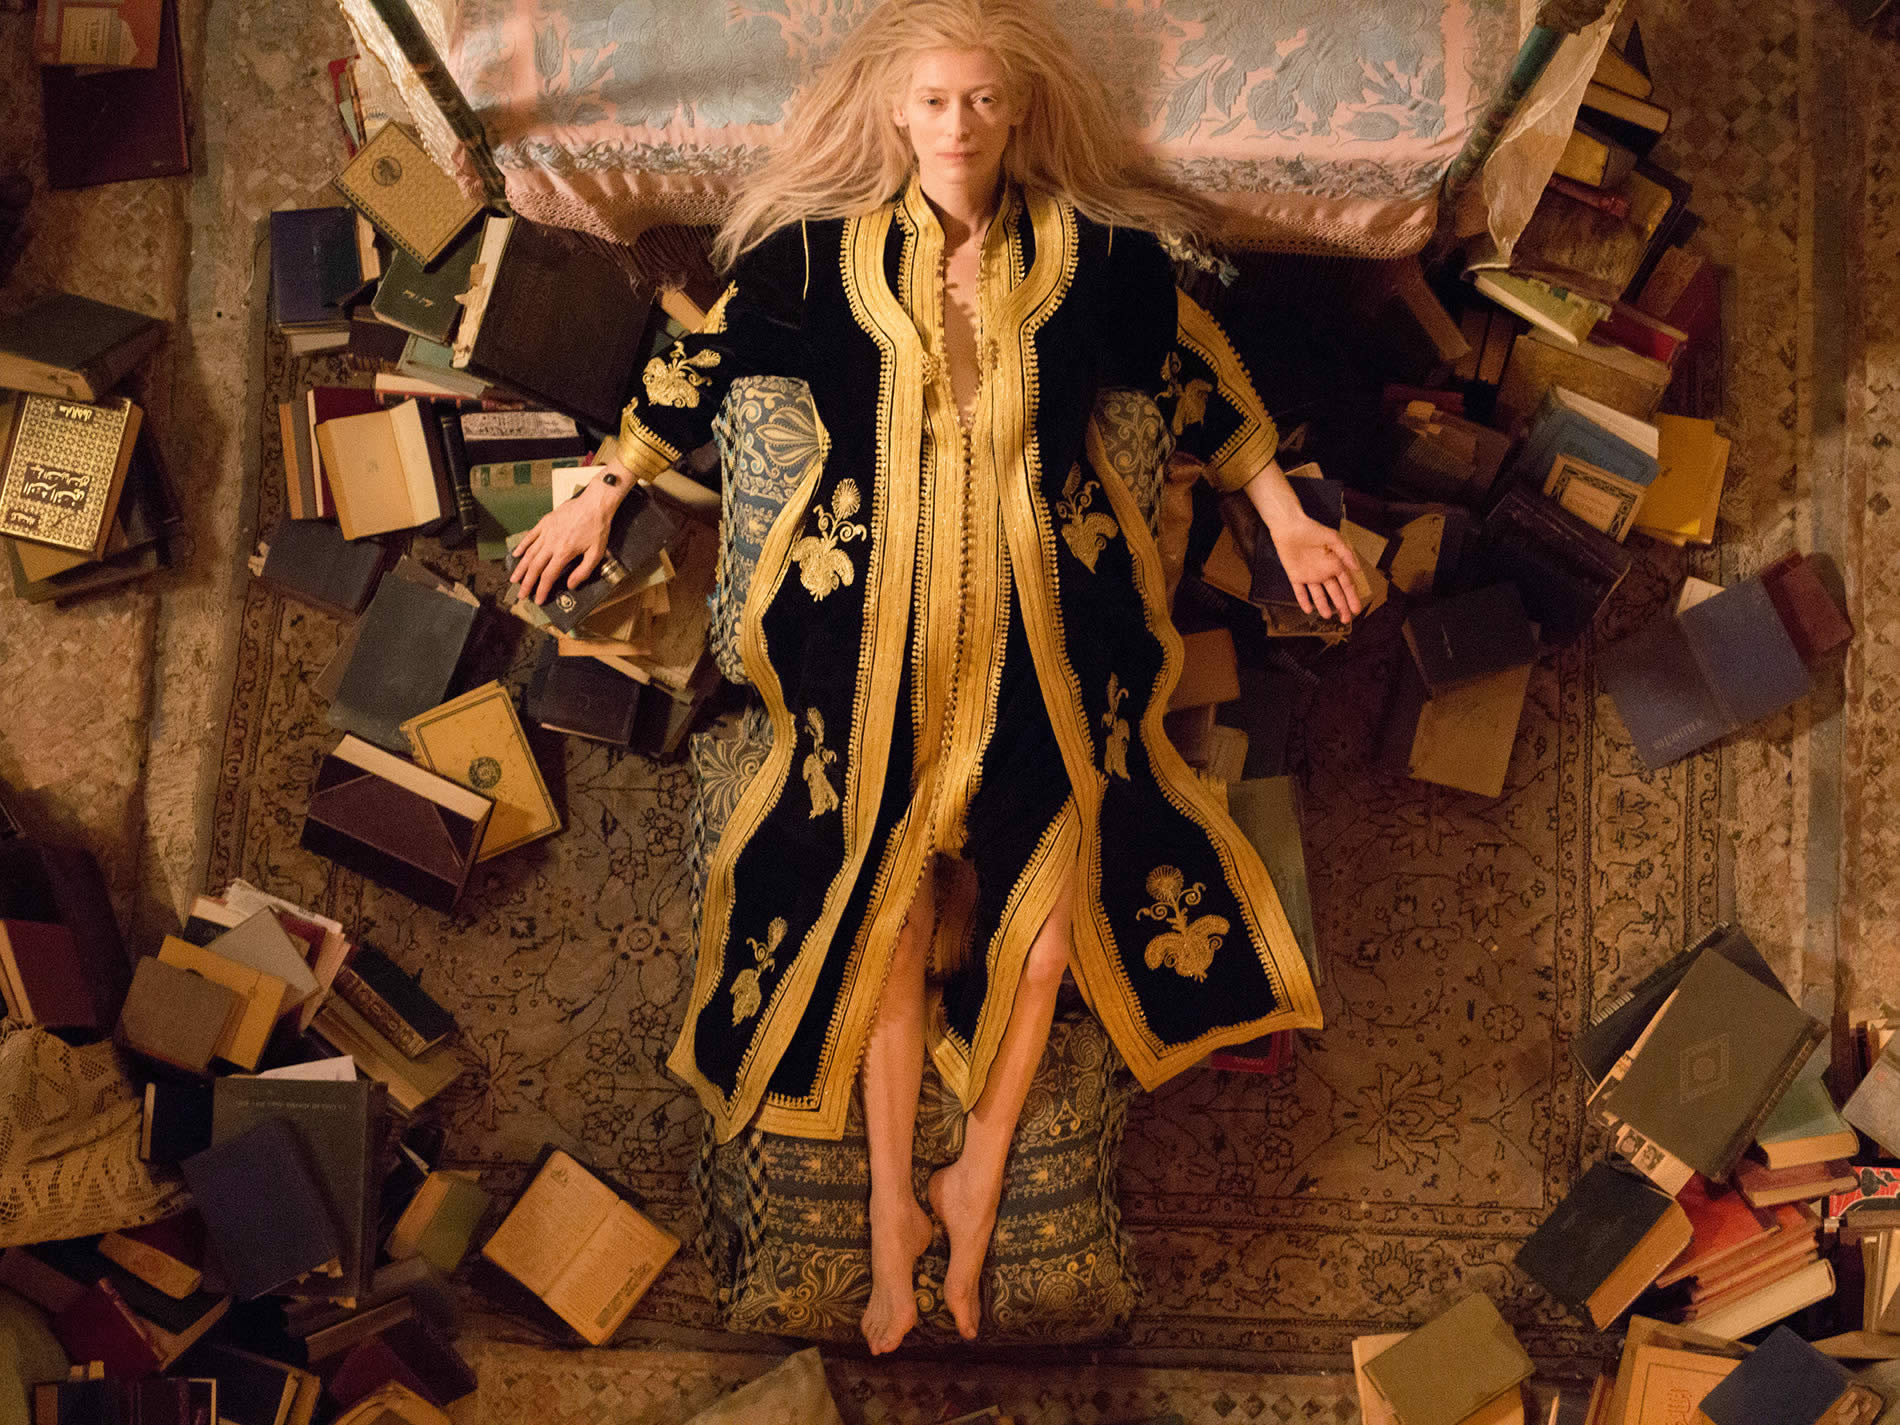 Tilda lying down with books all around, in the only lovers left alive